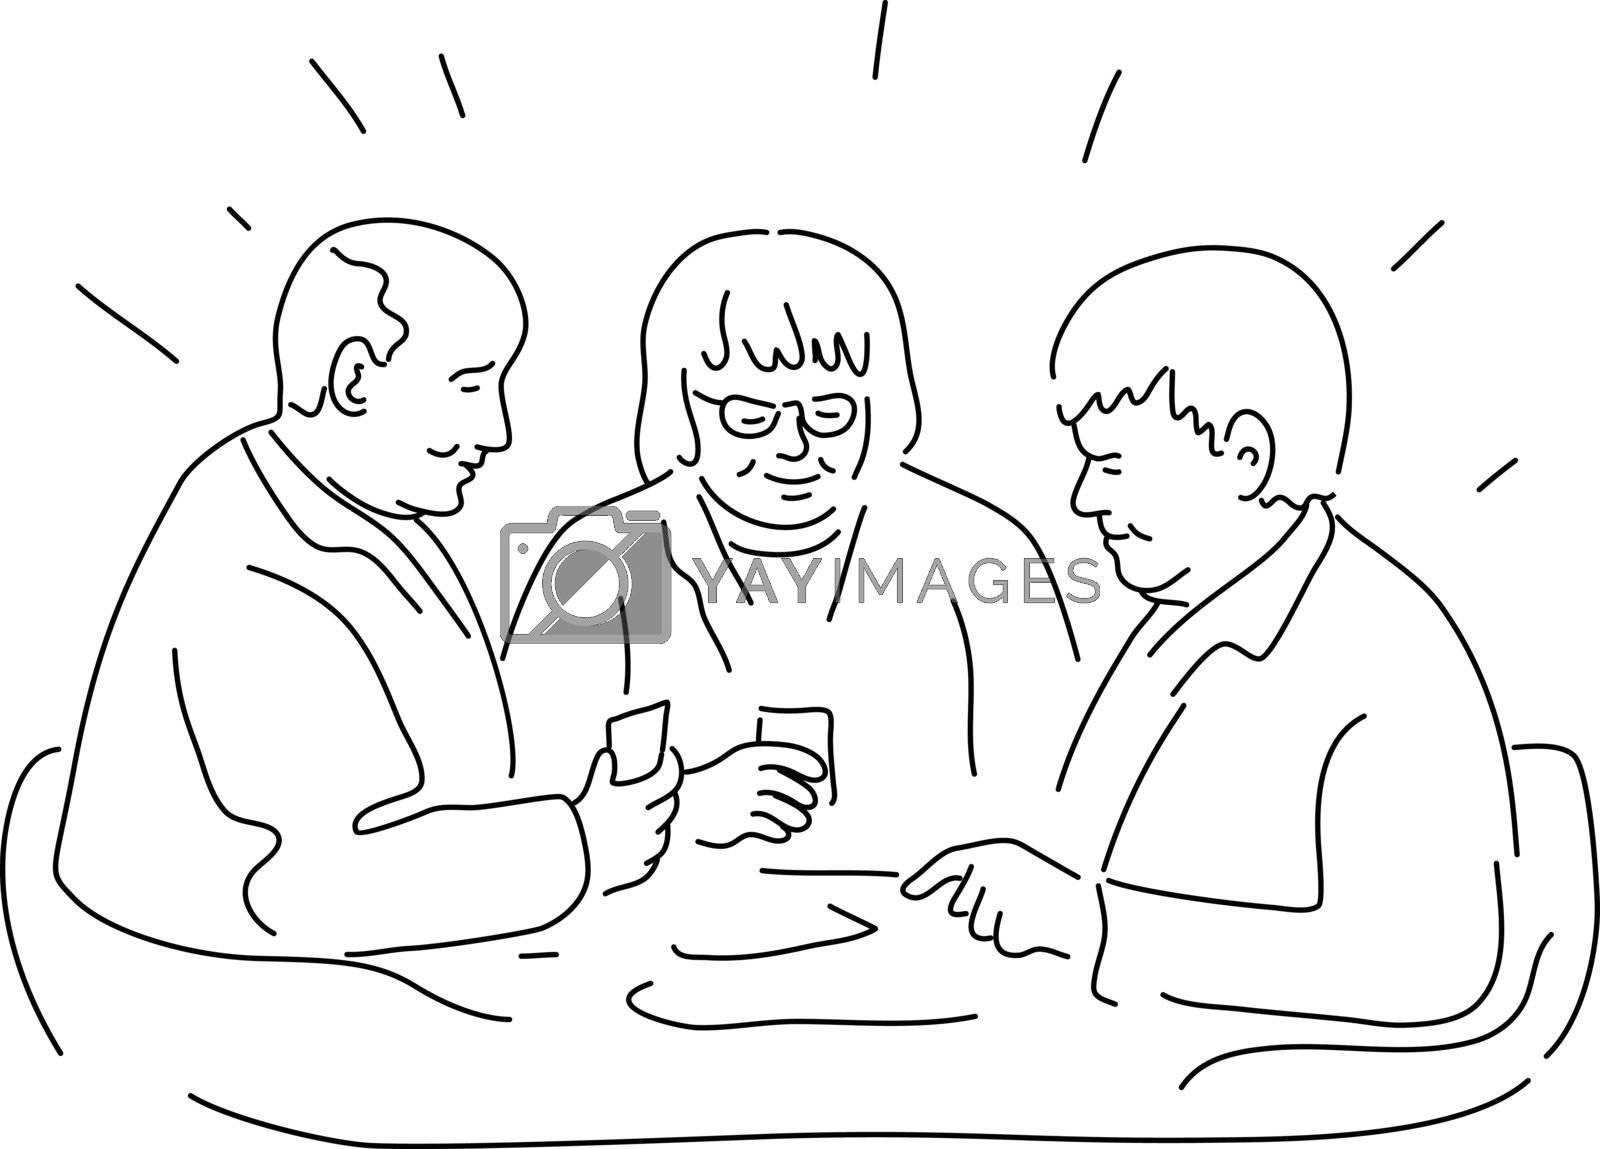 Mono line illustration of a group of elderly or senior patients in rest home or residential facility playing cards done in monoline black and white style.